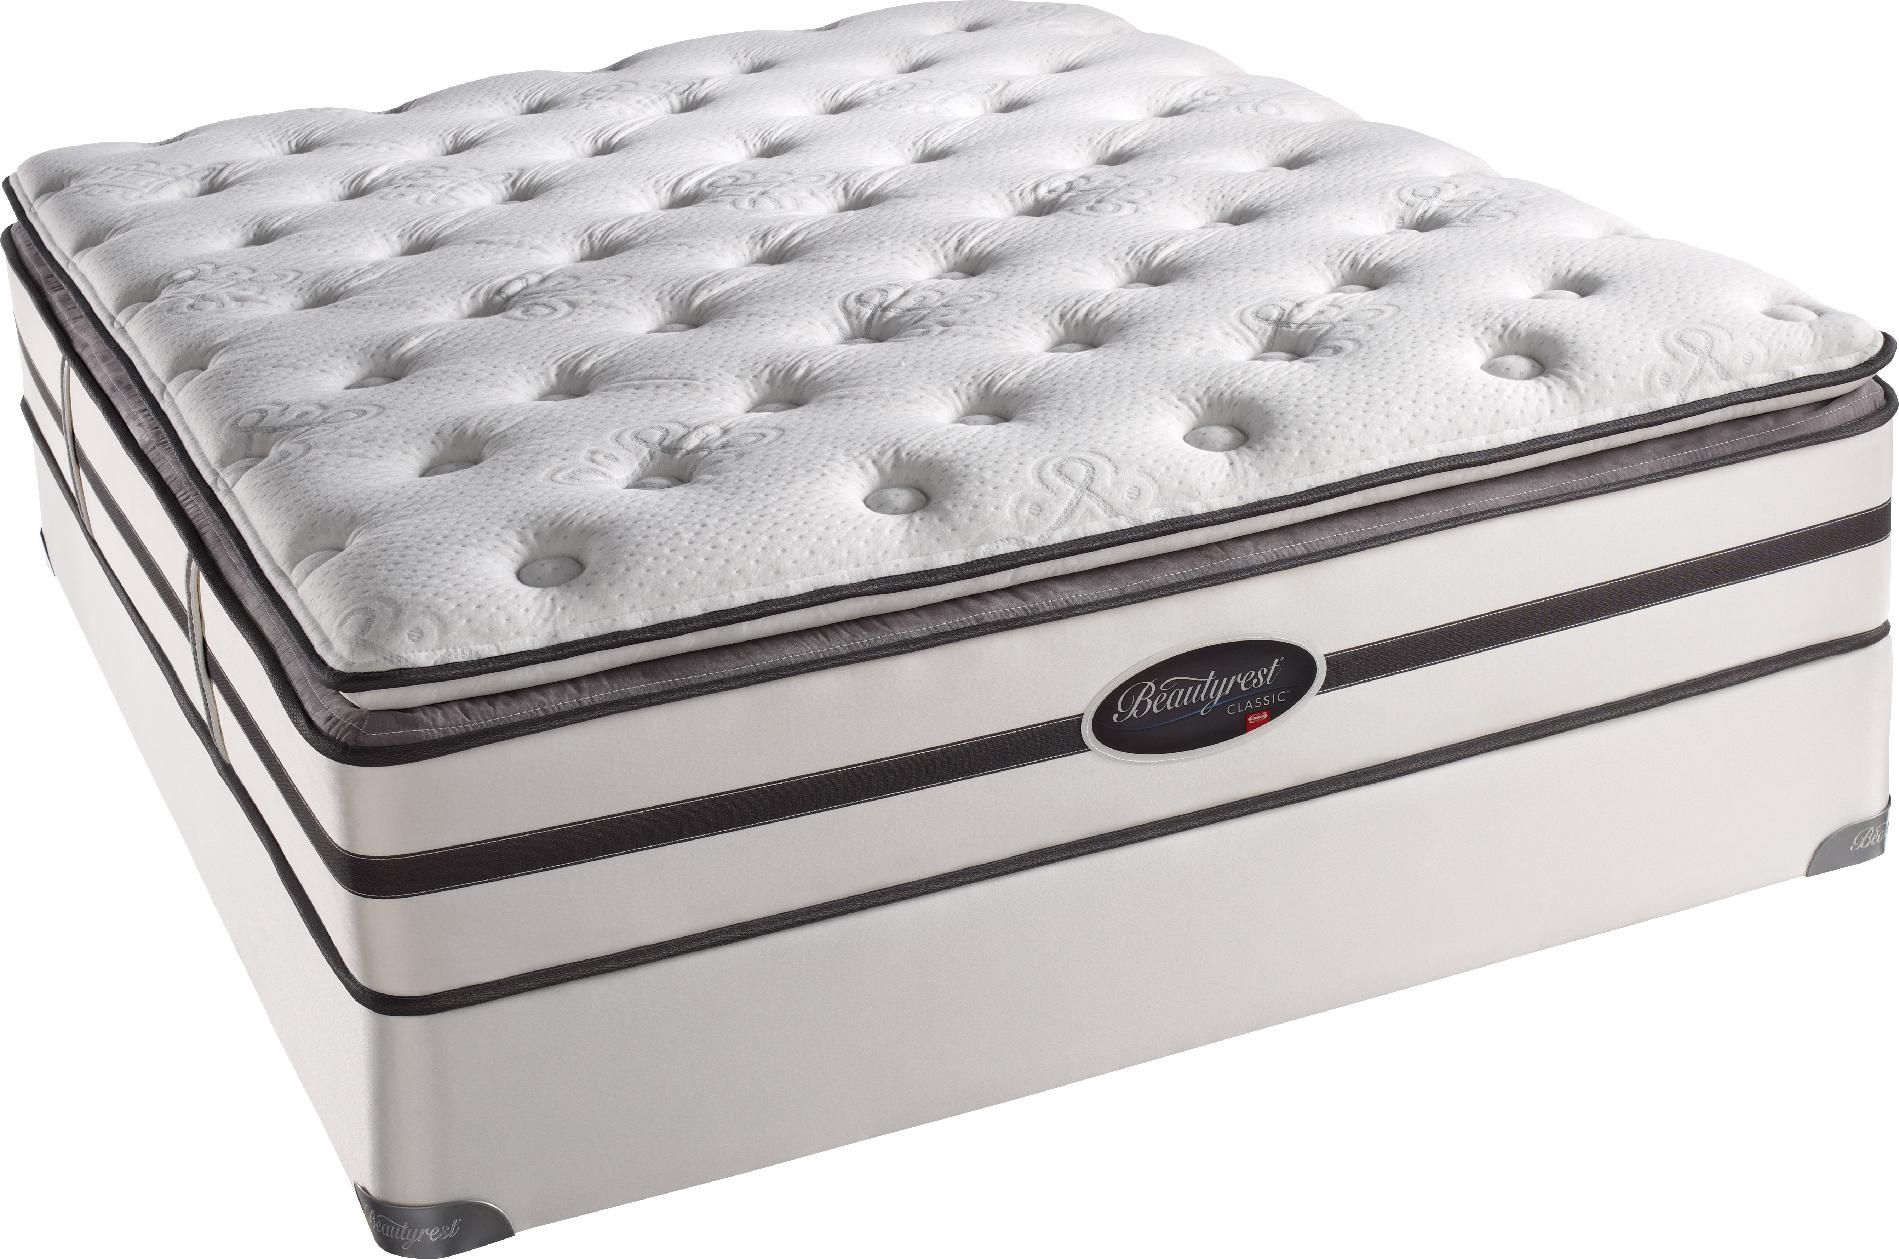 Mattresses Jackson Simmons Beautyrest Glover Park II